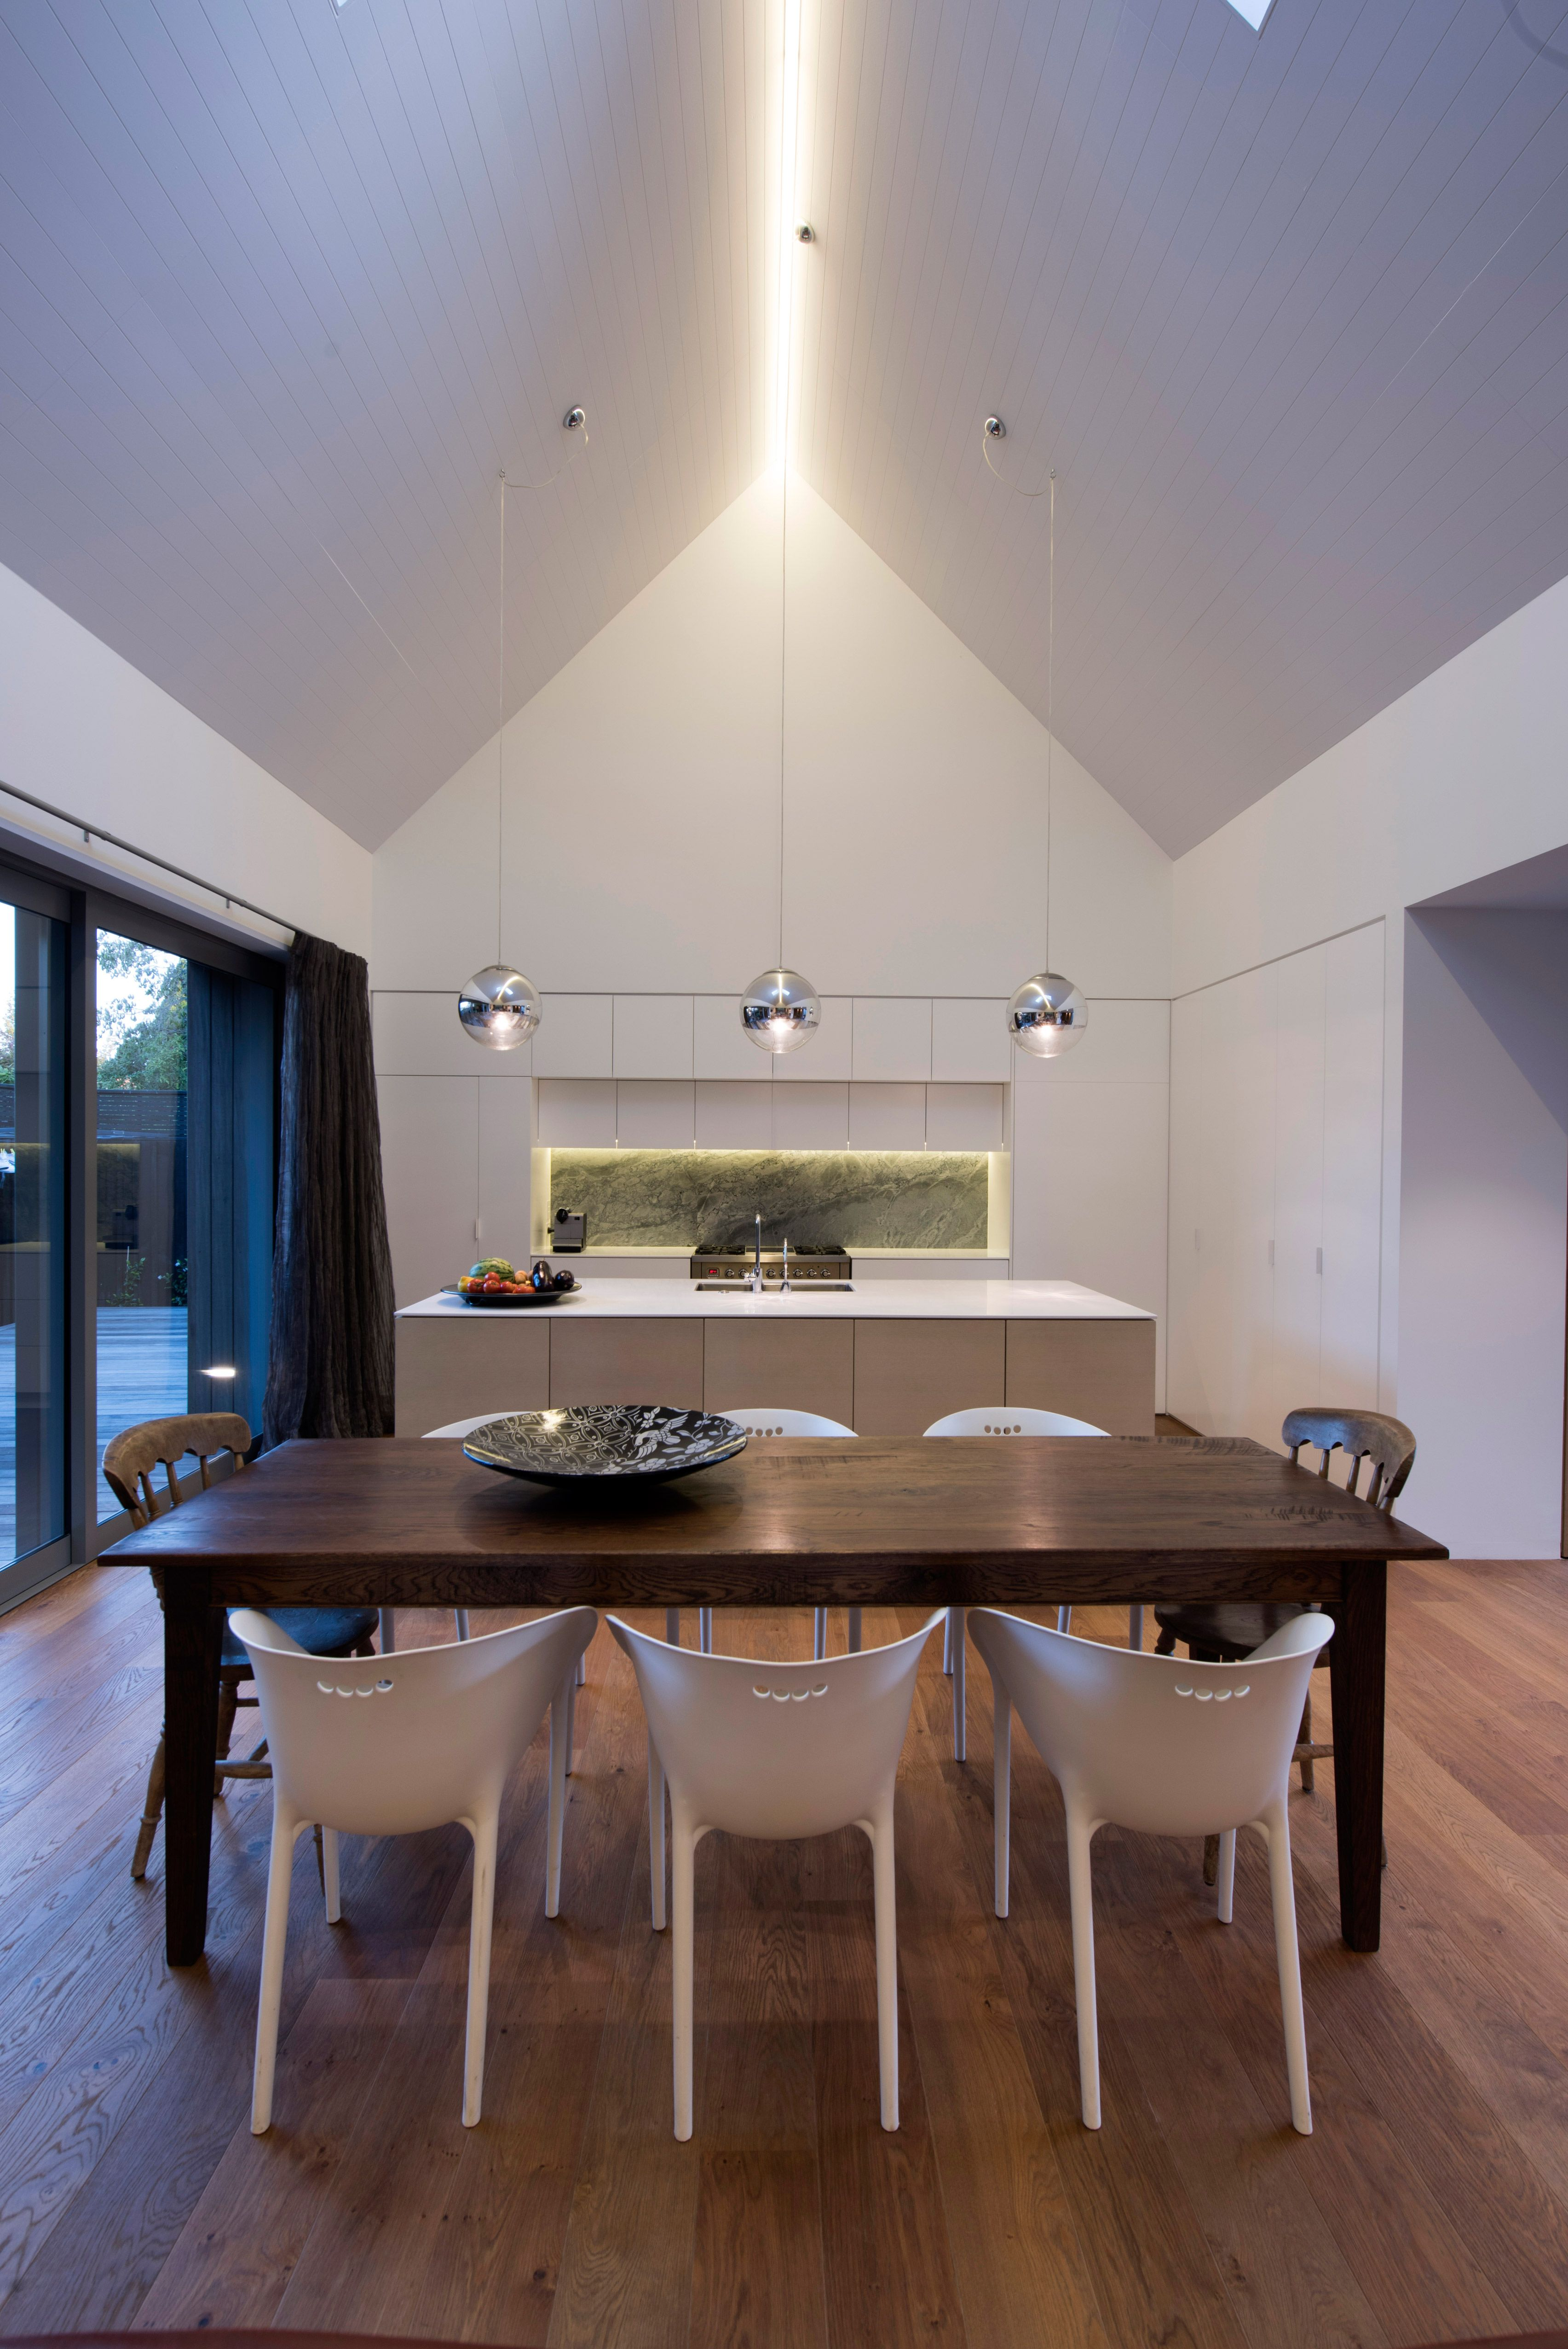 Steep Pitched Roof In Dining Room And Kitchen In New Zealand Home Architecture House House Design House Interior